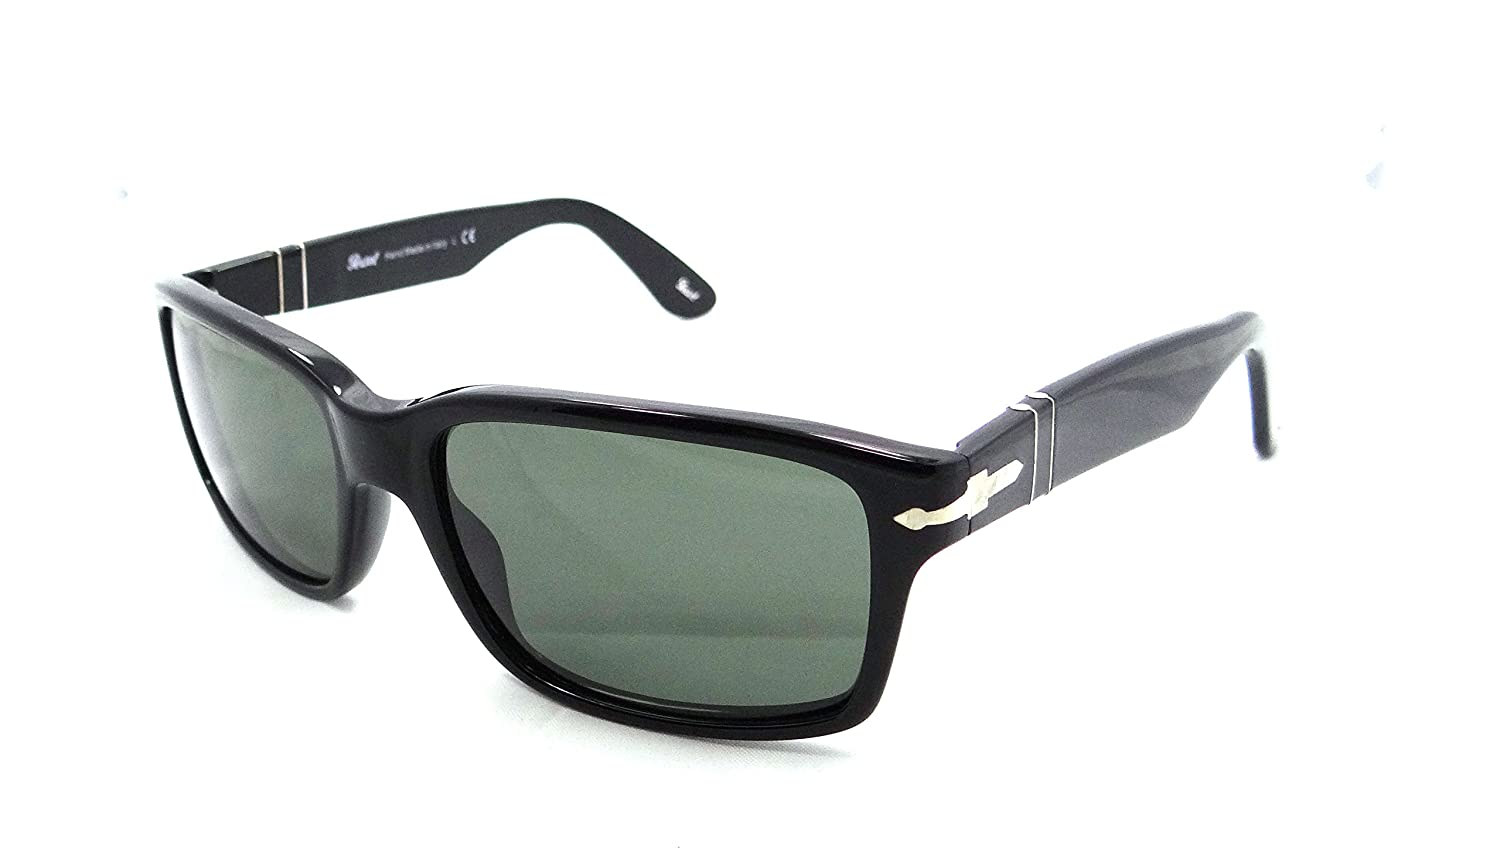 bdcc83dbfe Amazon.com  Persol Sunglasses 3067 S 95 31 57x18 Black   Grey Green Lens  Made in Italy  Clothing